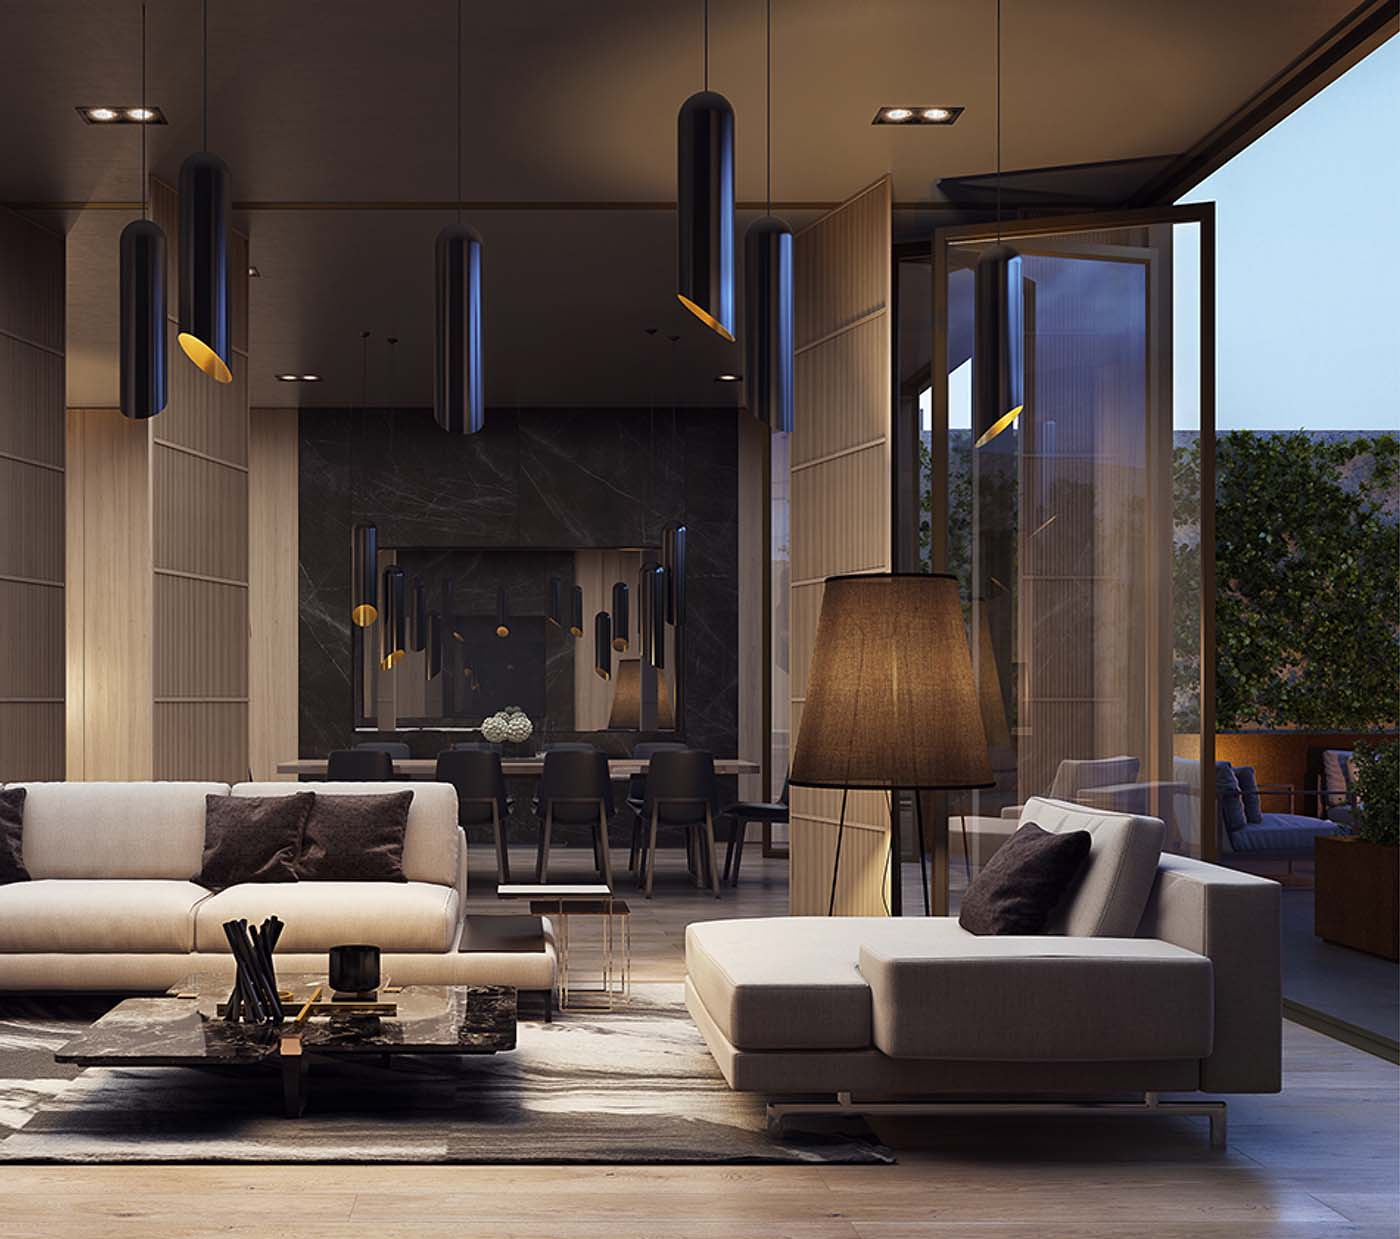 Luxurious waiting area of a skyscraper in Parramatta, Sydney showing sofas, lamps and tables.